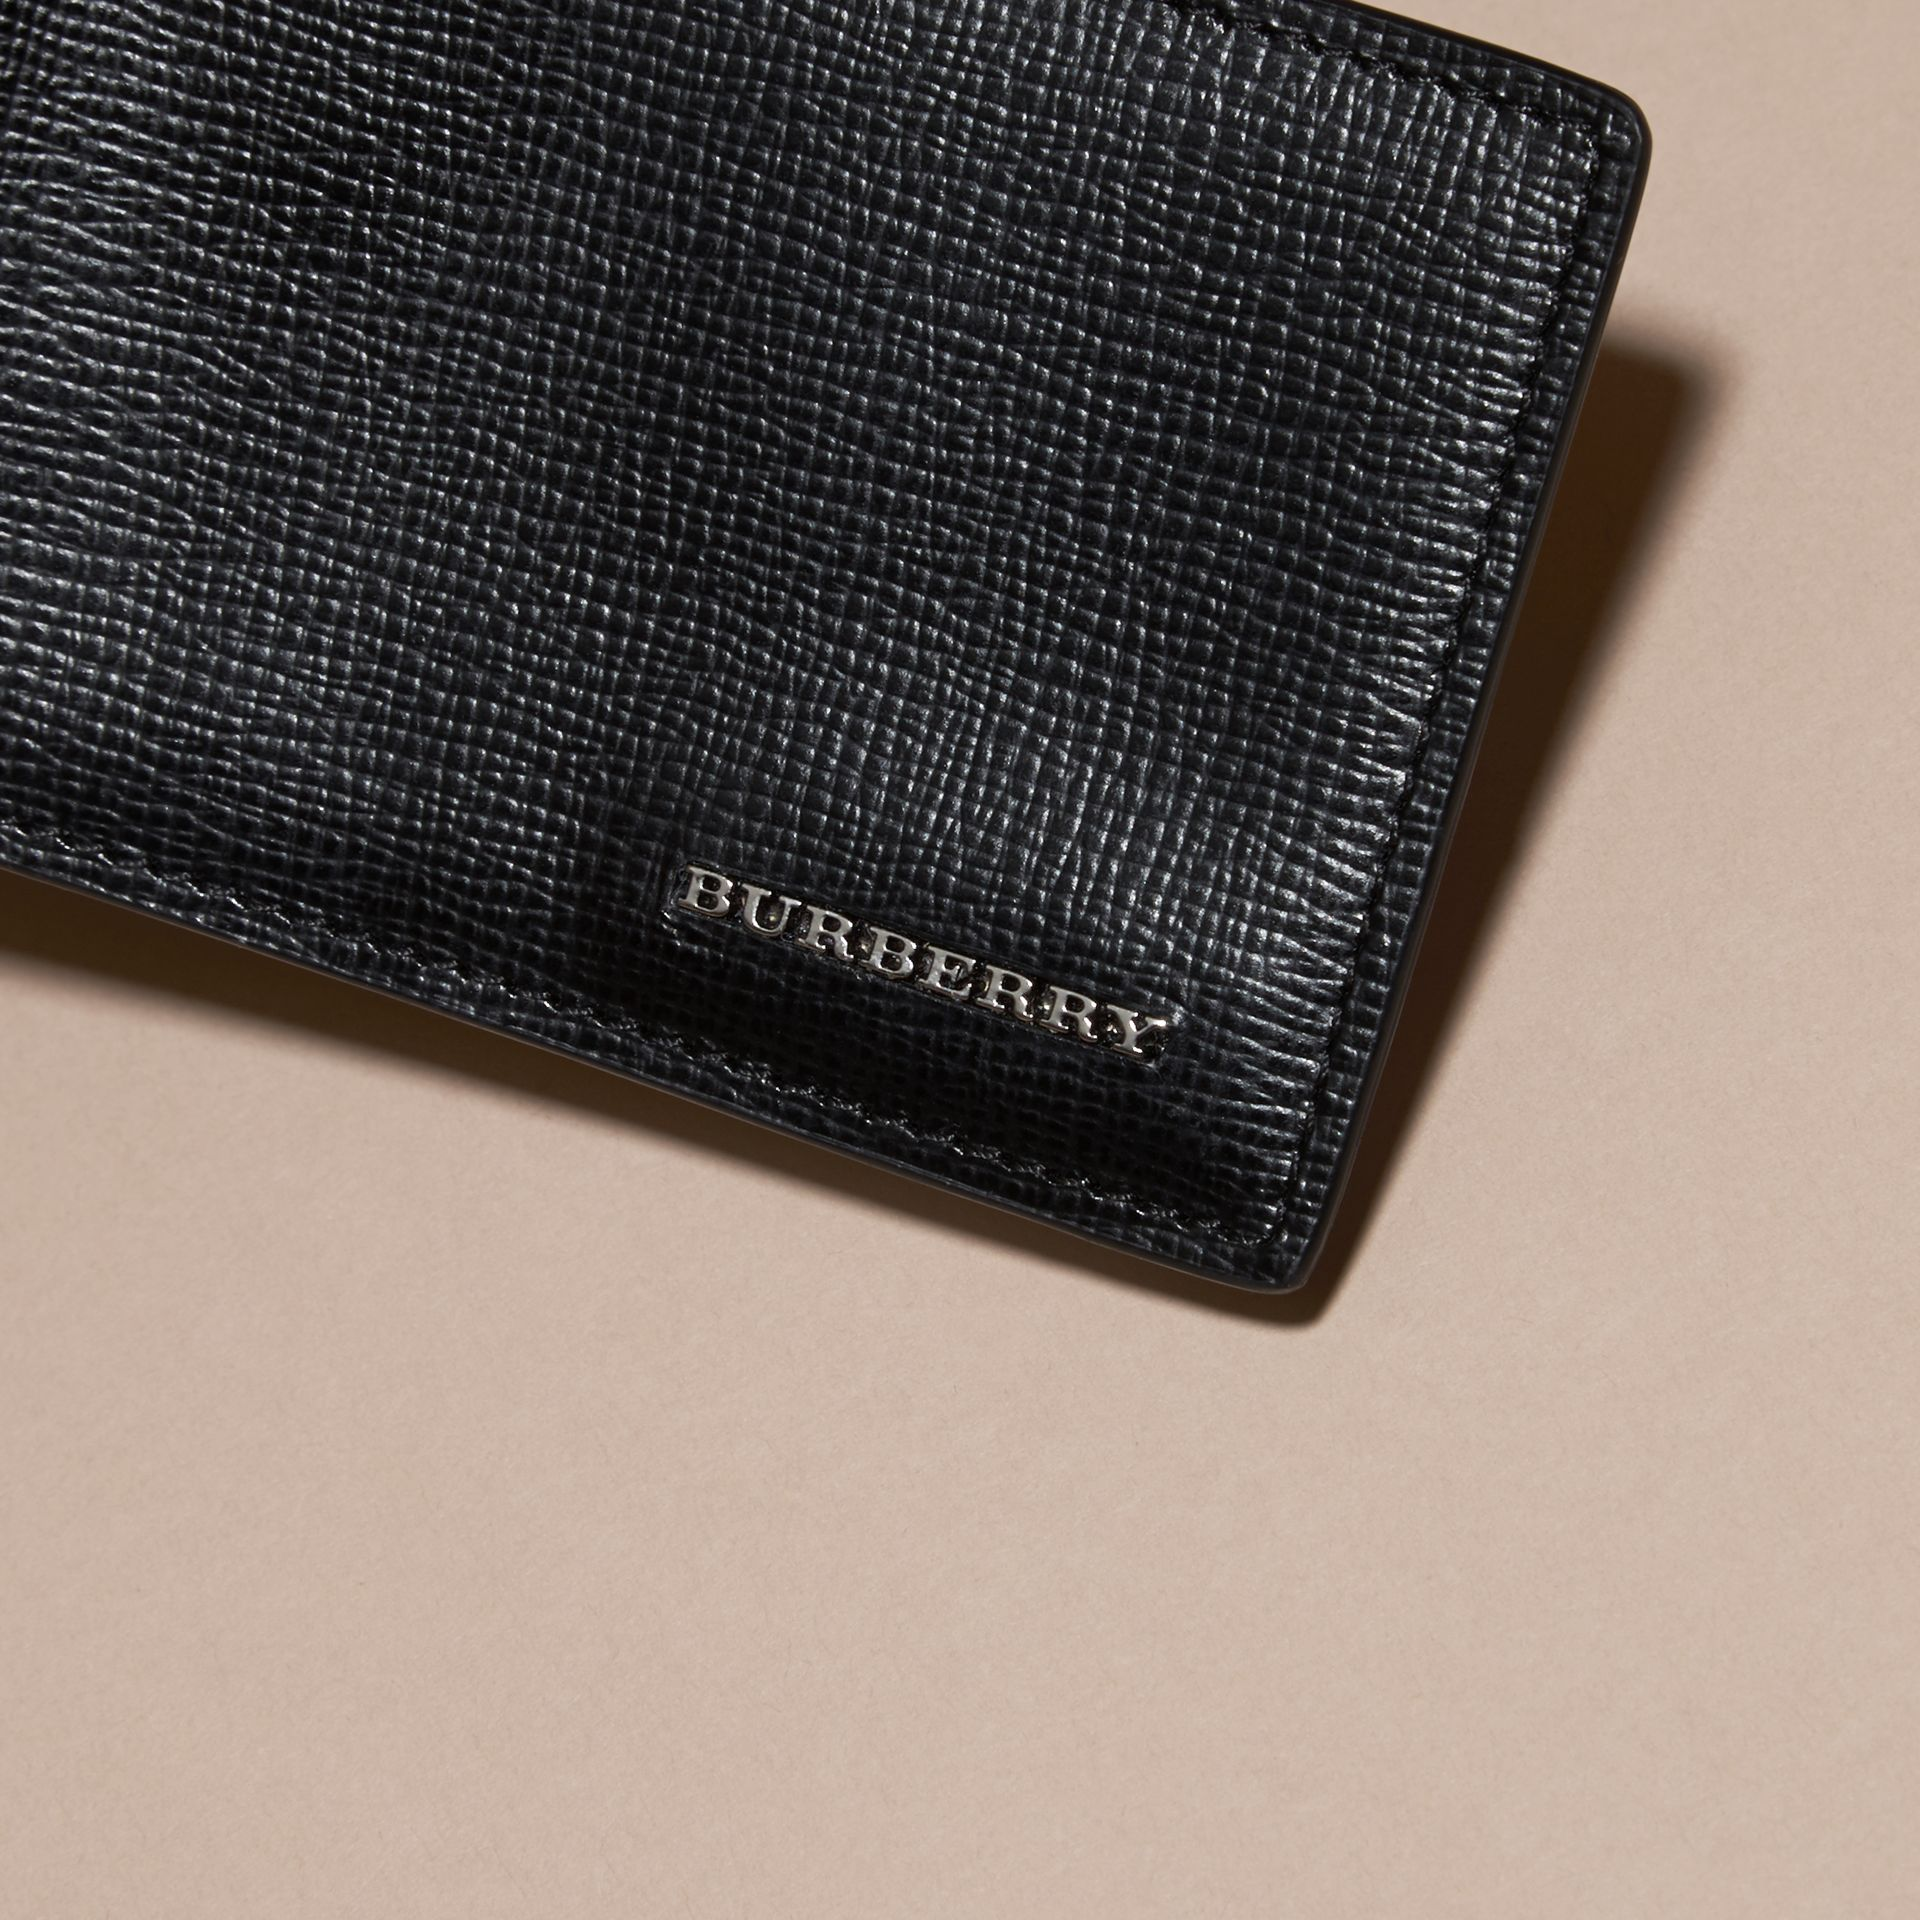 Black London Leather ID Wallet Black - gallery image 2